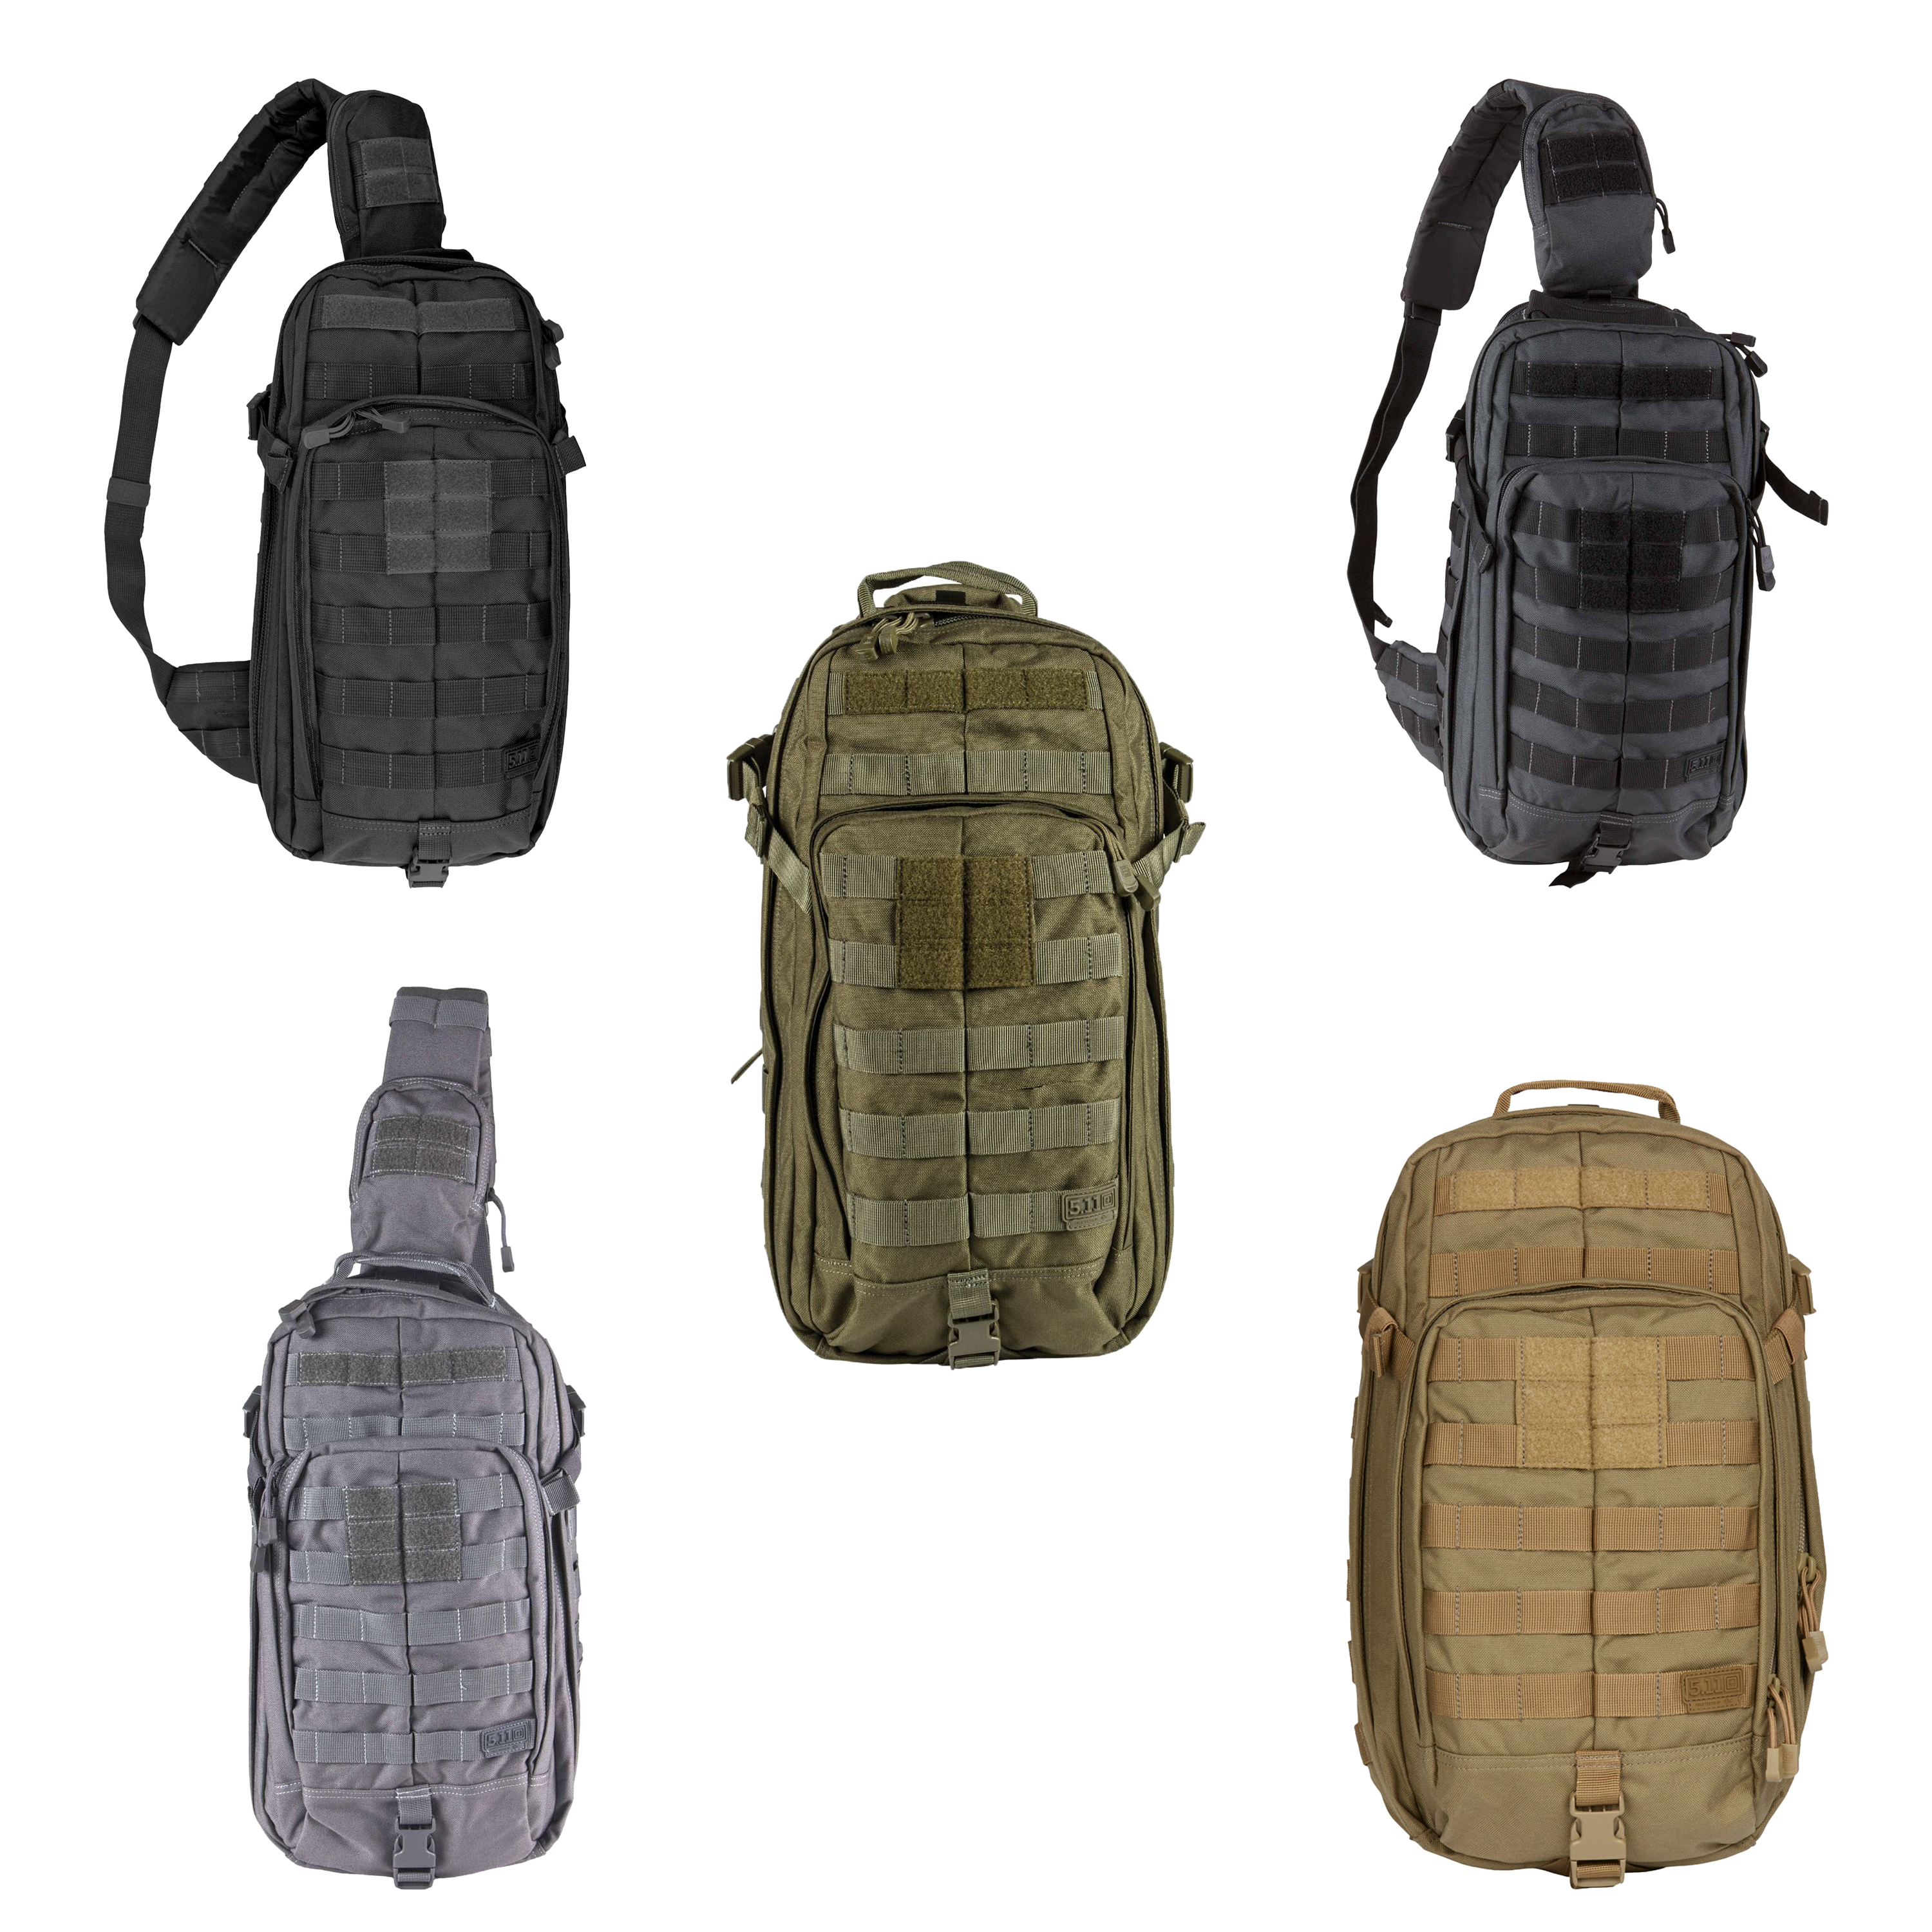 5 11 Rush Moab 10 Tactical Sling Pack Backpack 18 Liter Molle Style 56964